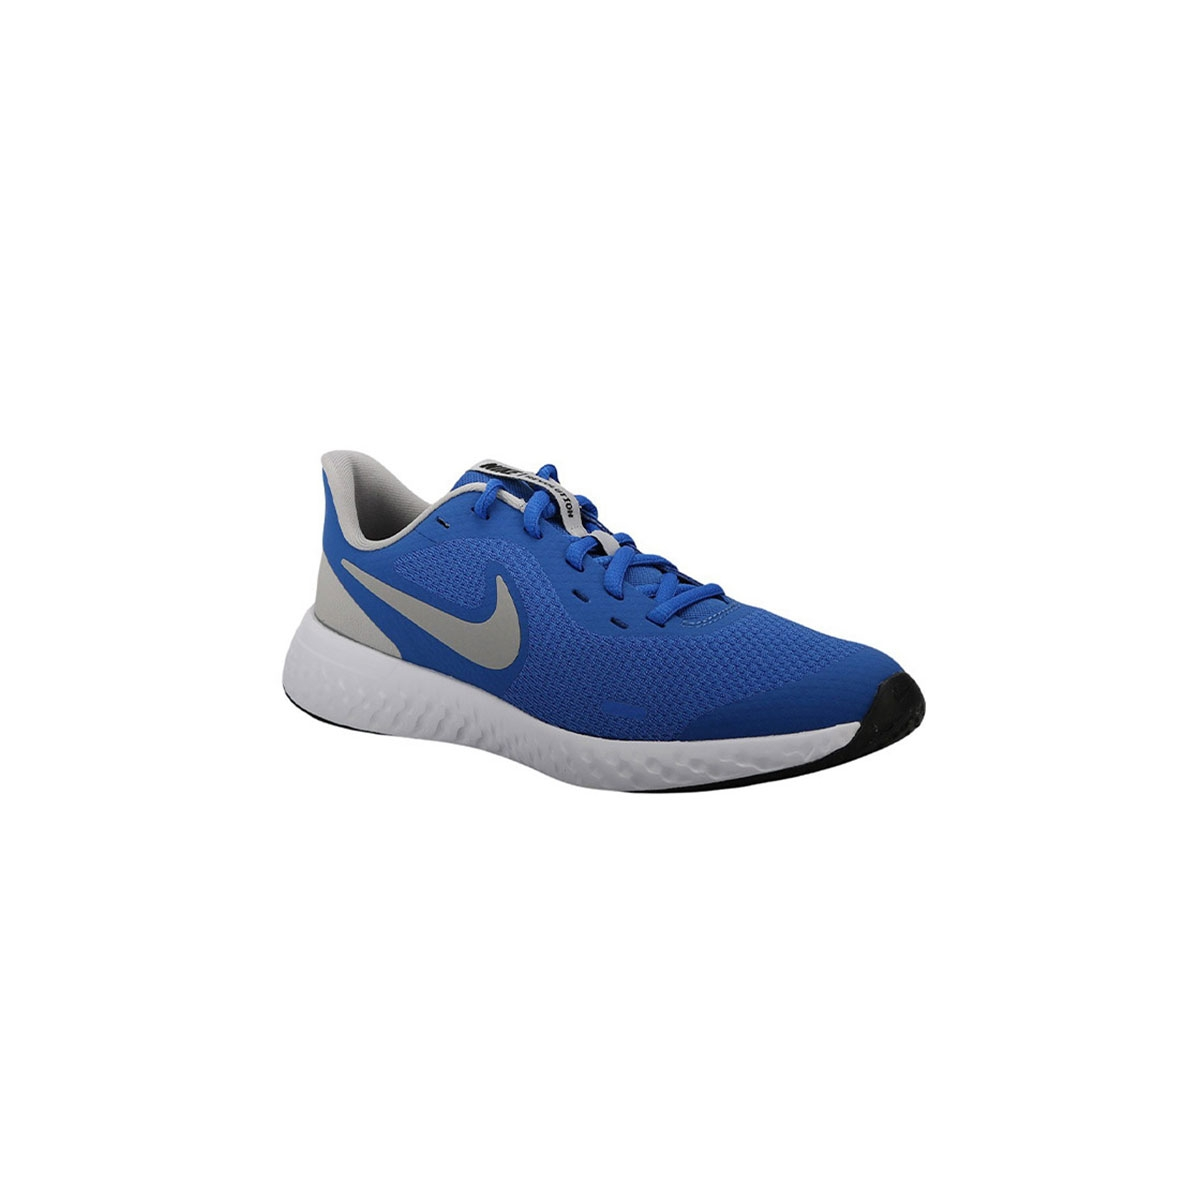 Nike Zapatilla Revolution 5 Game Royal Azul Gris Niño